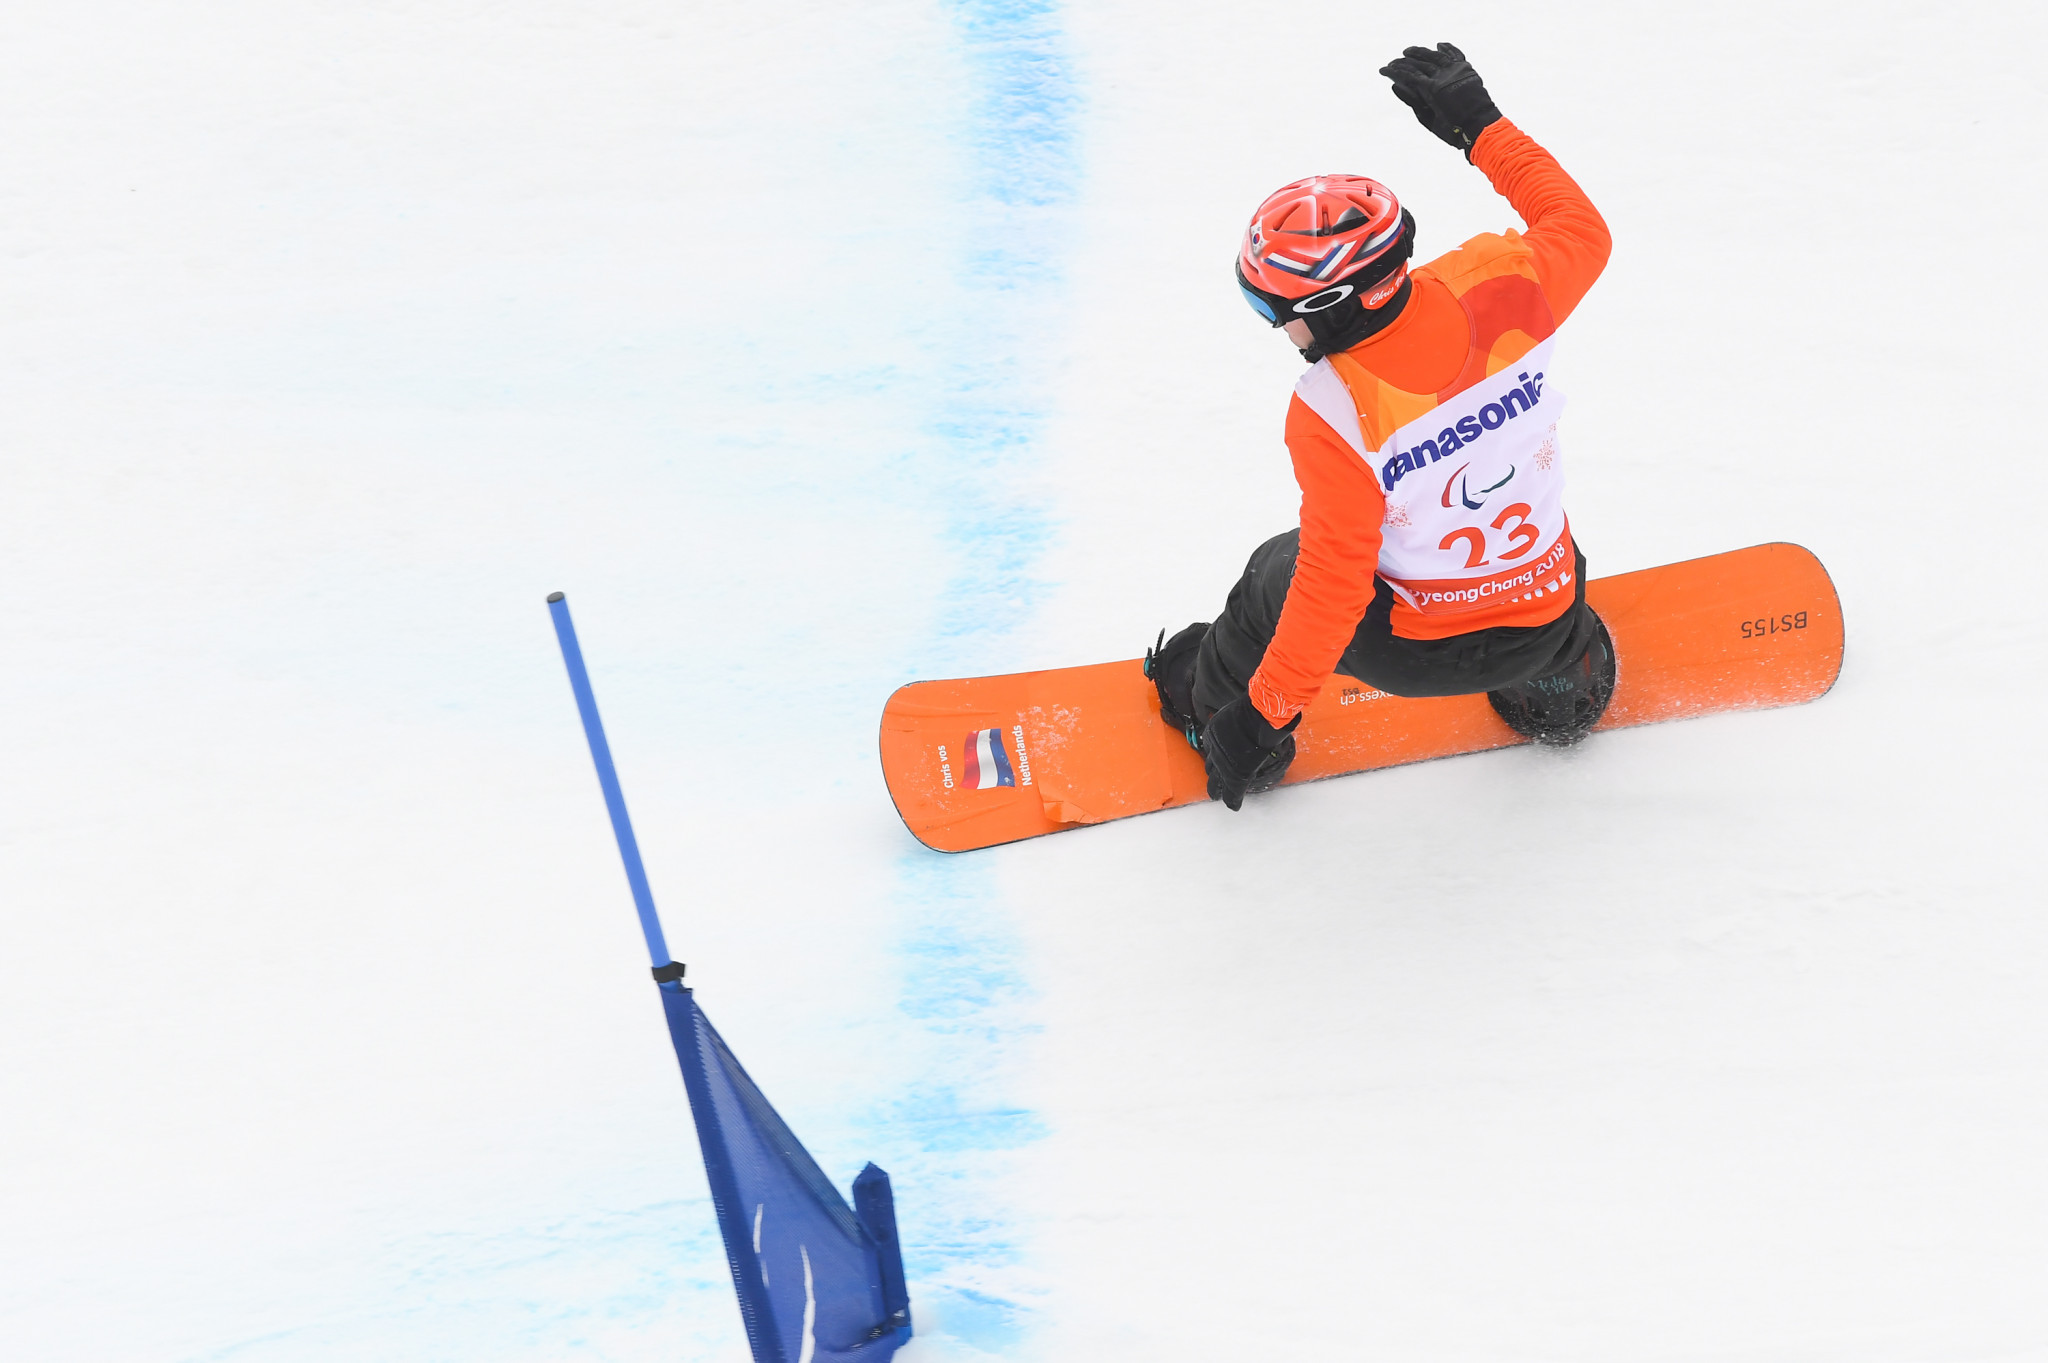 Vos victorious again at Para Snowboard World Cup in Landgraaf